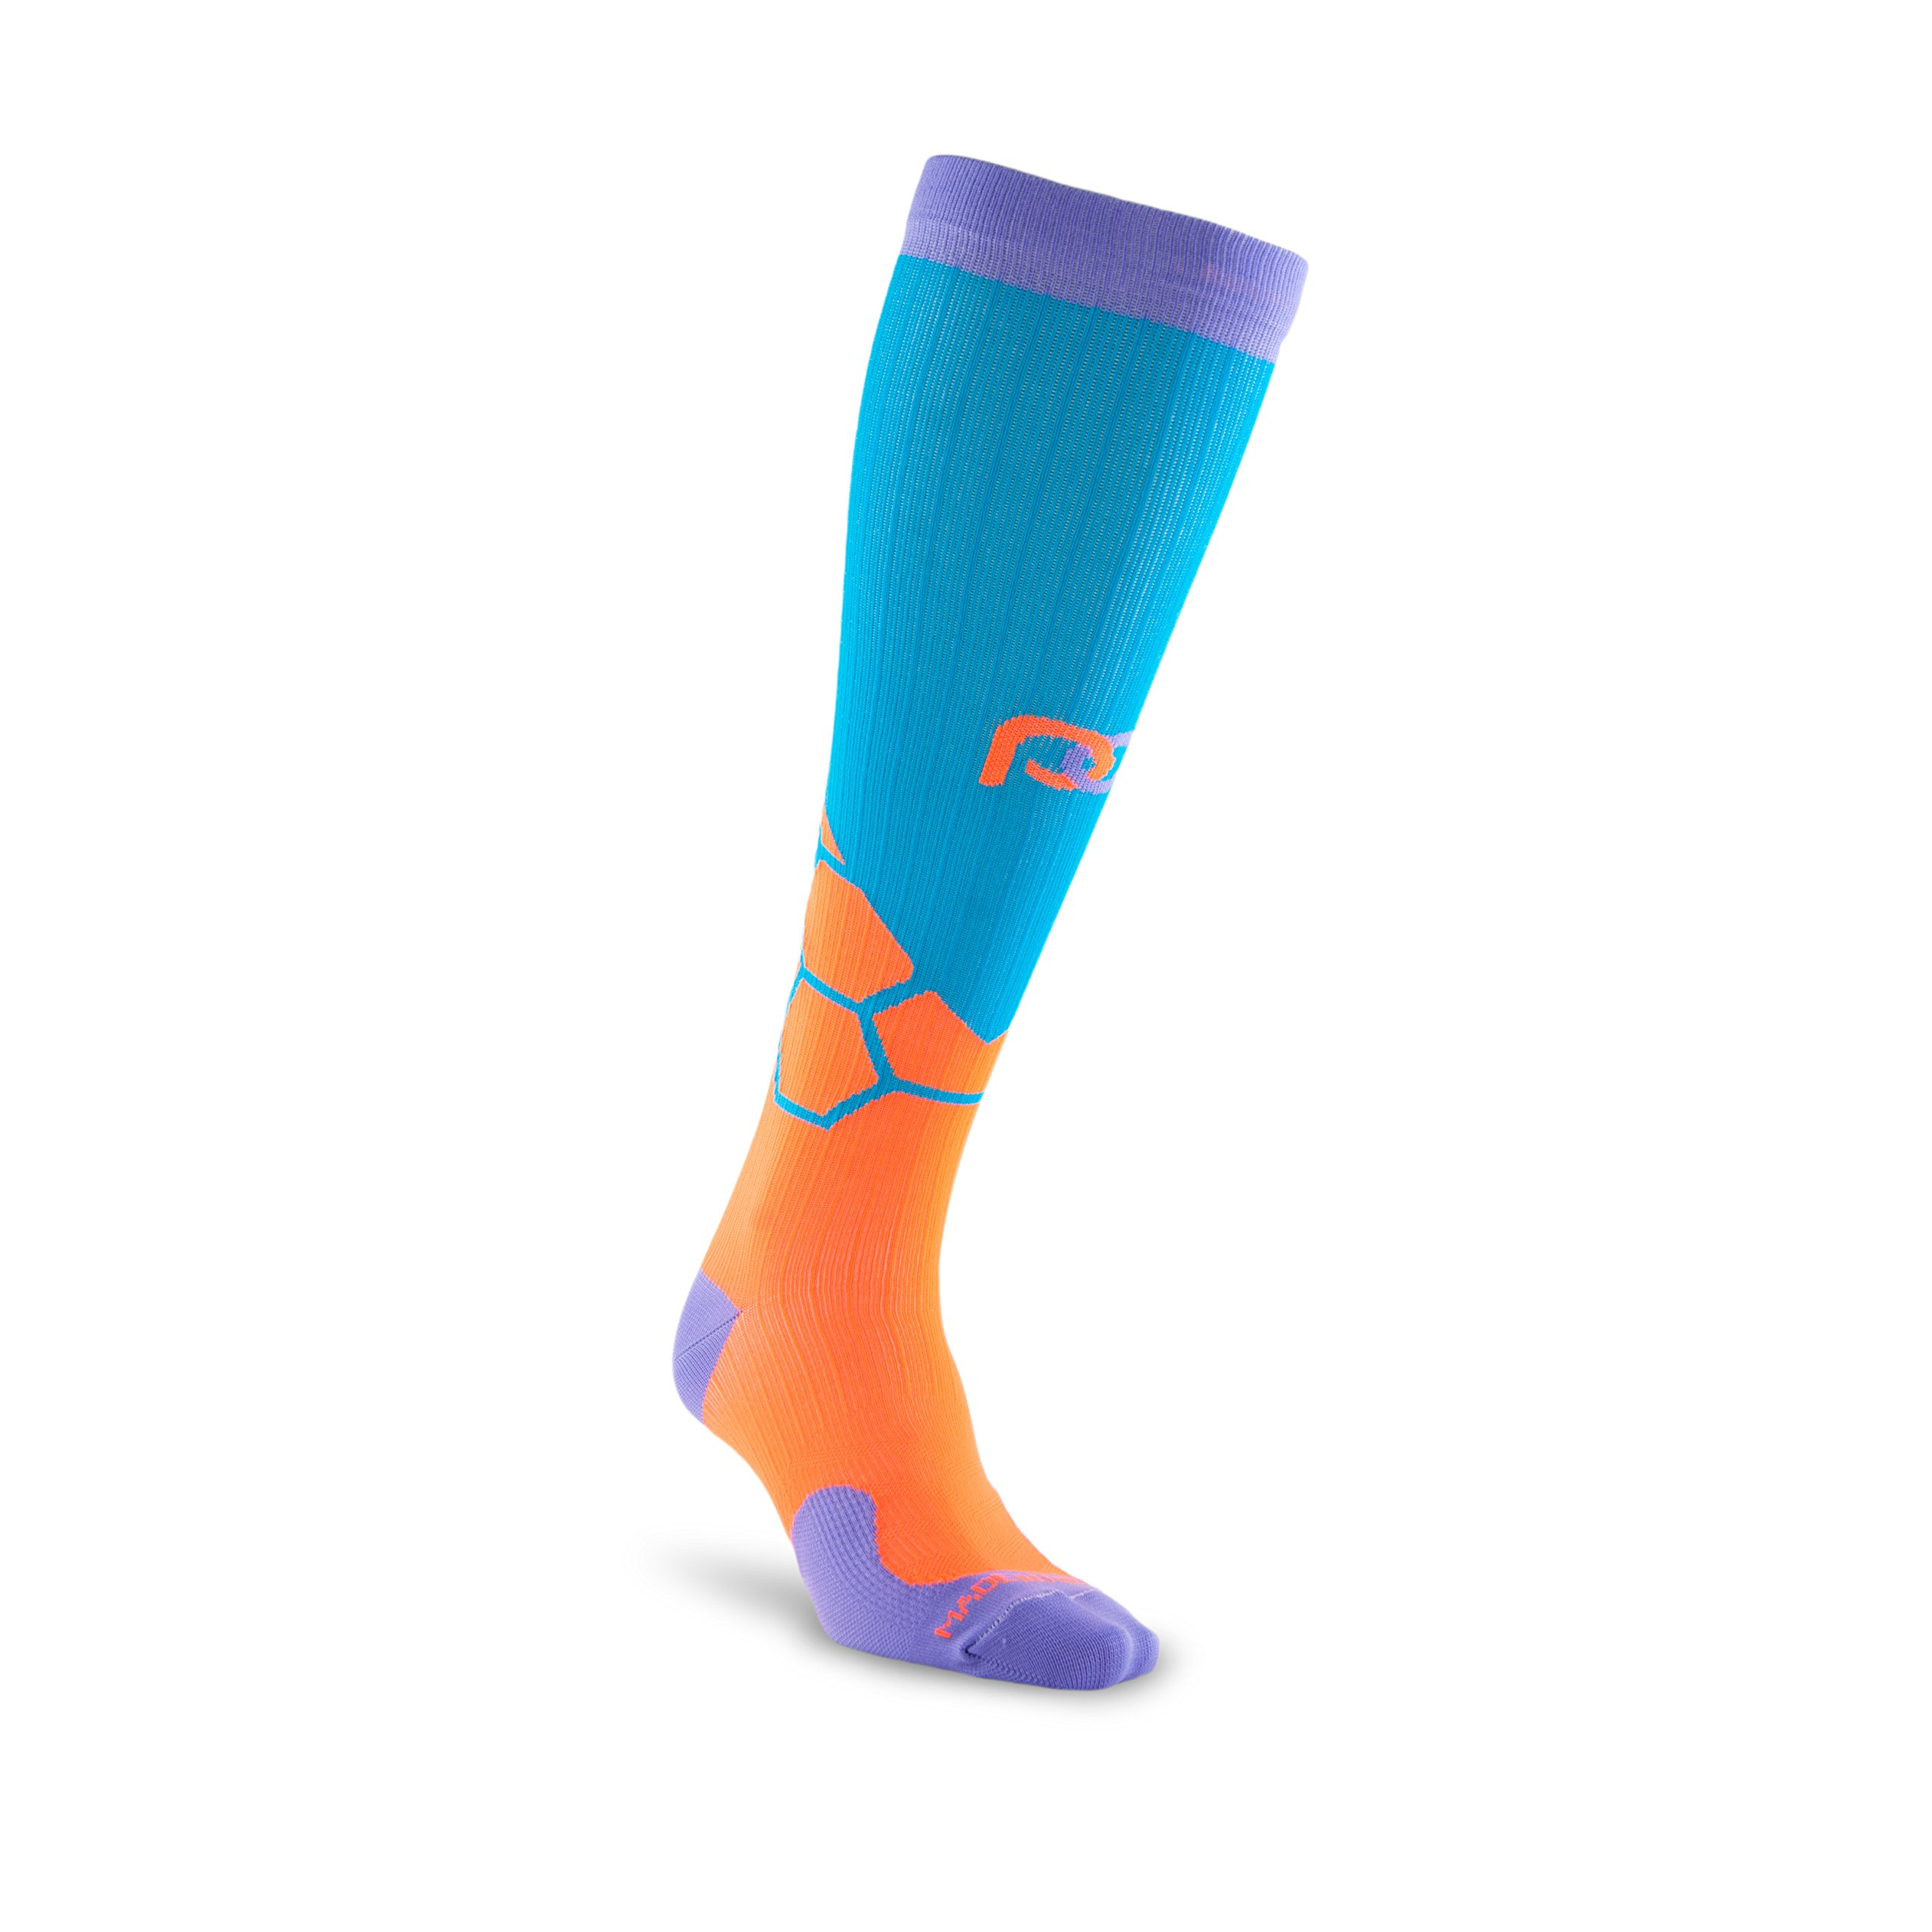 PRO Compression The Official Brand - Made in The USA - Men and Women - Nurses to Runners Designs! (Graduated Compression Technology)